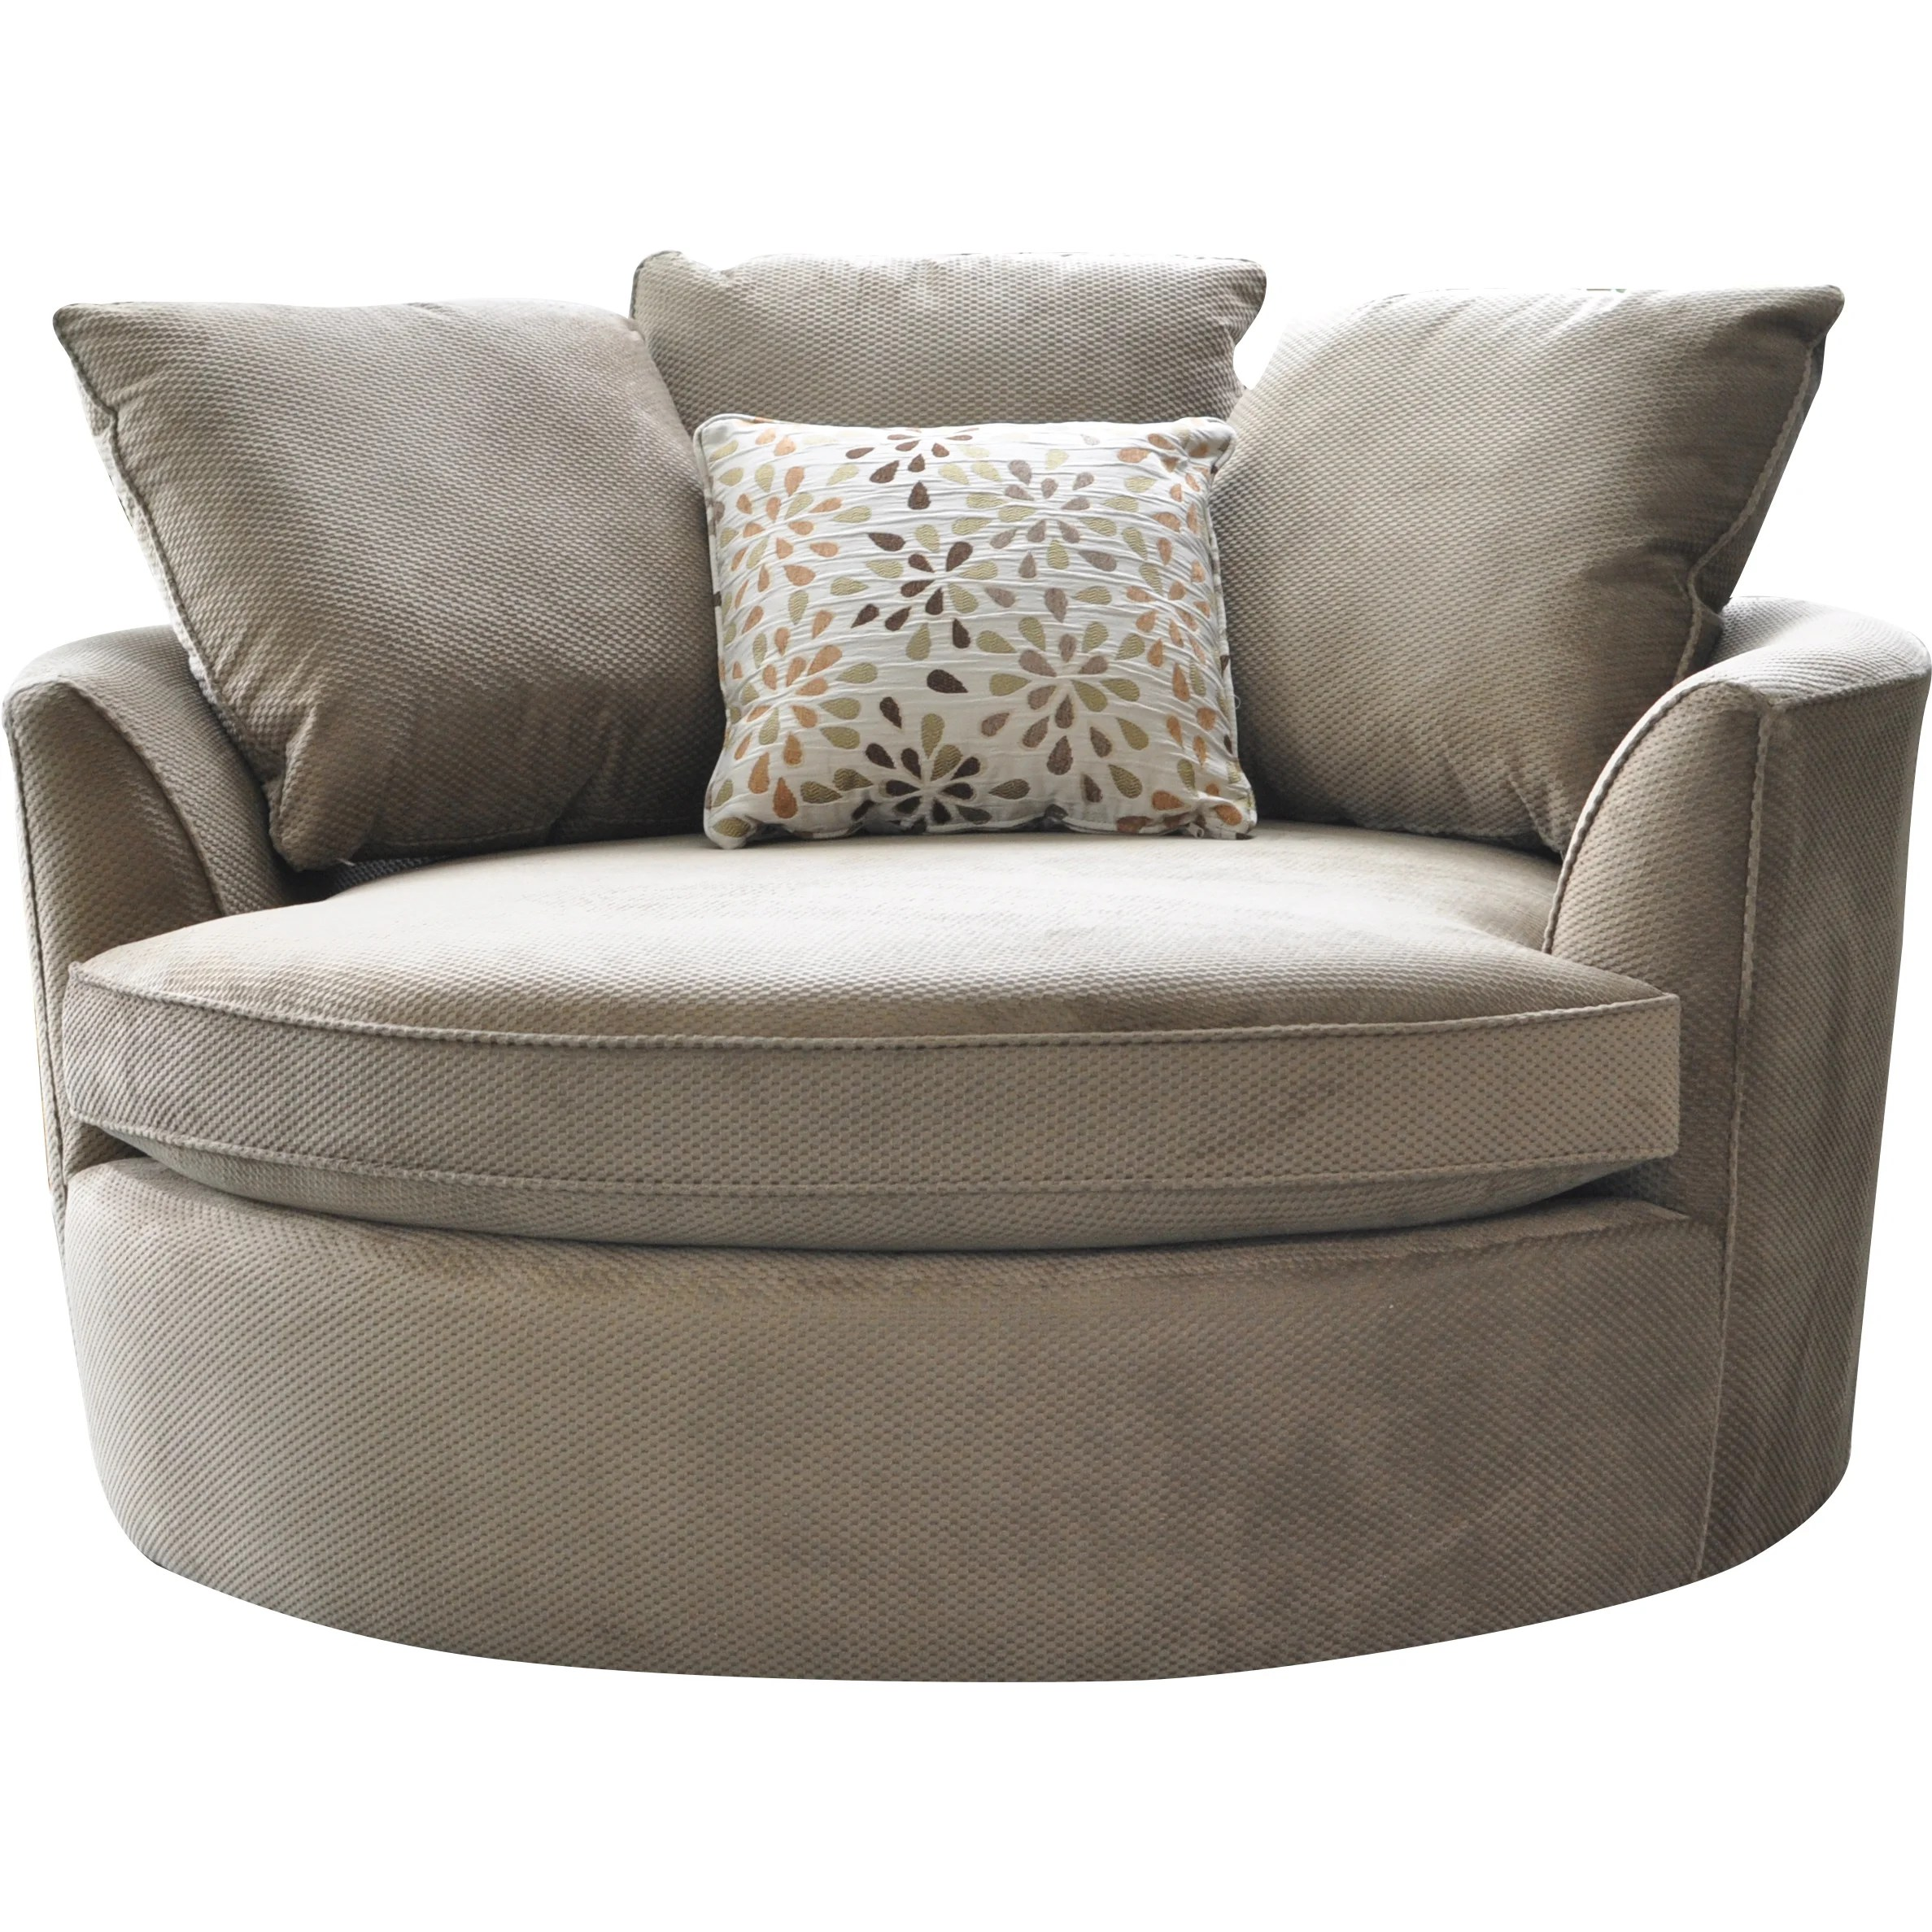 Round Comfy Chair Cuddler Swivel Sofa Chair Home Decor